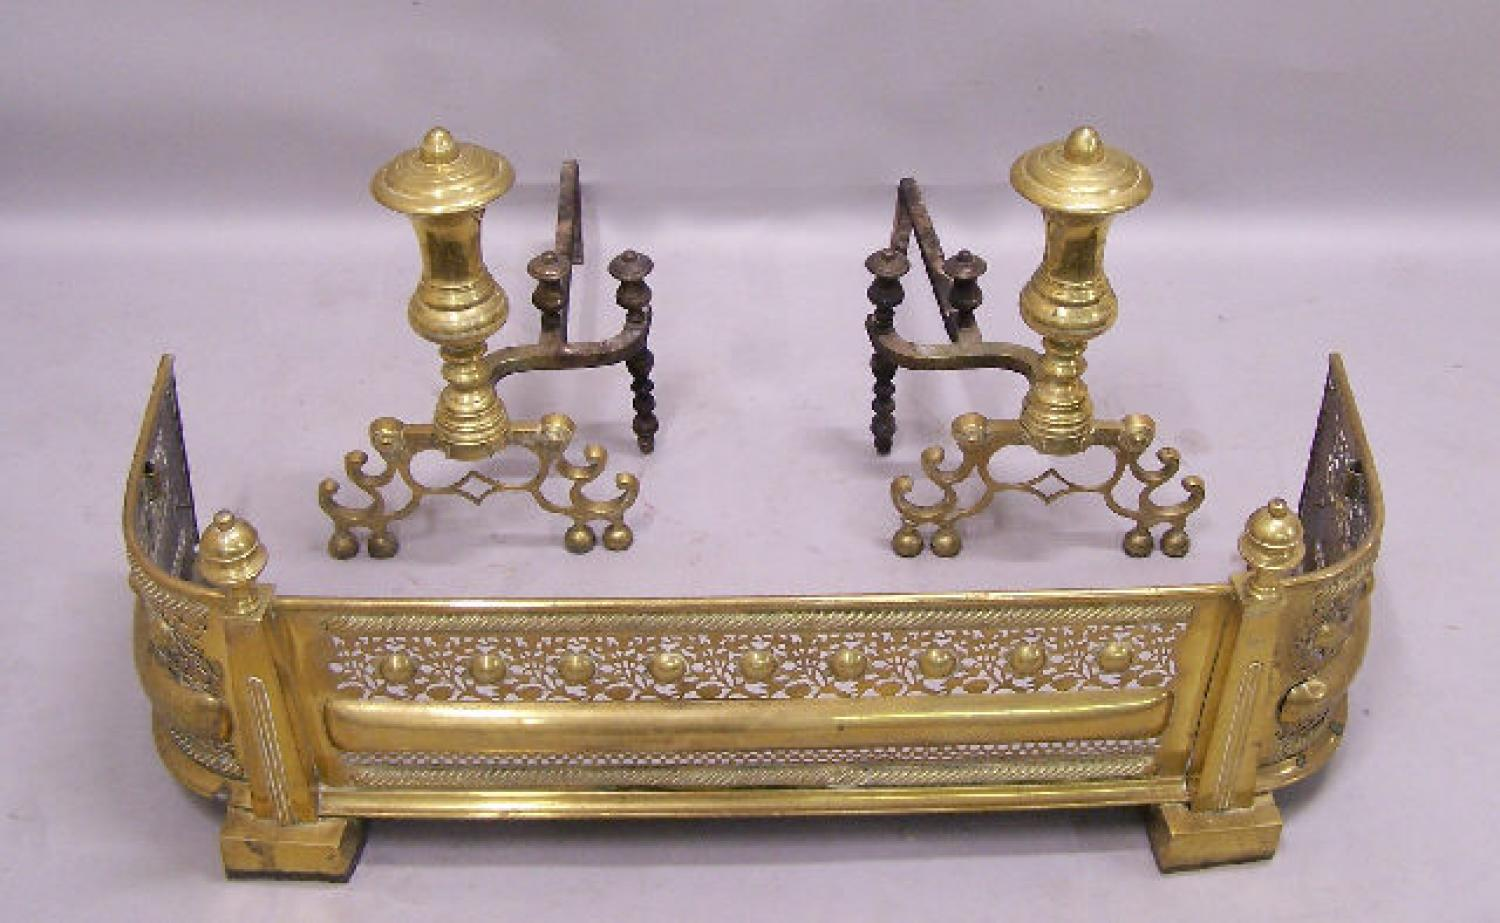 Russian brass fireplace fender and andirons c1880